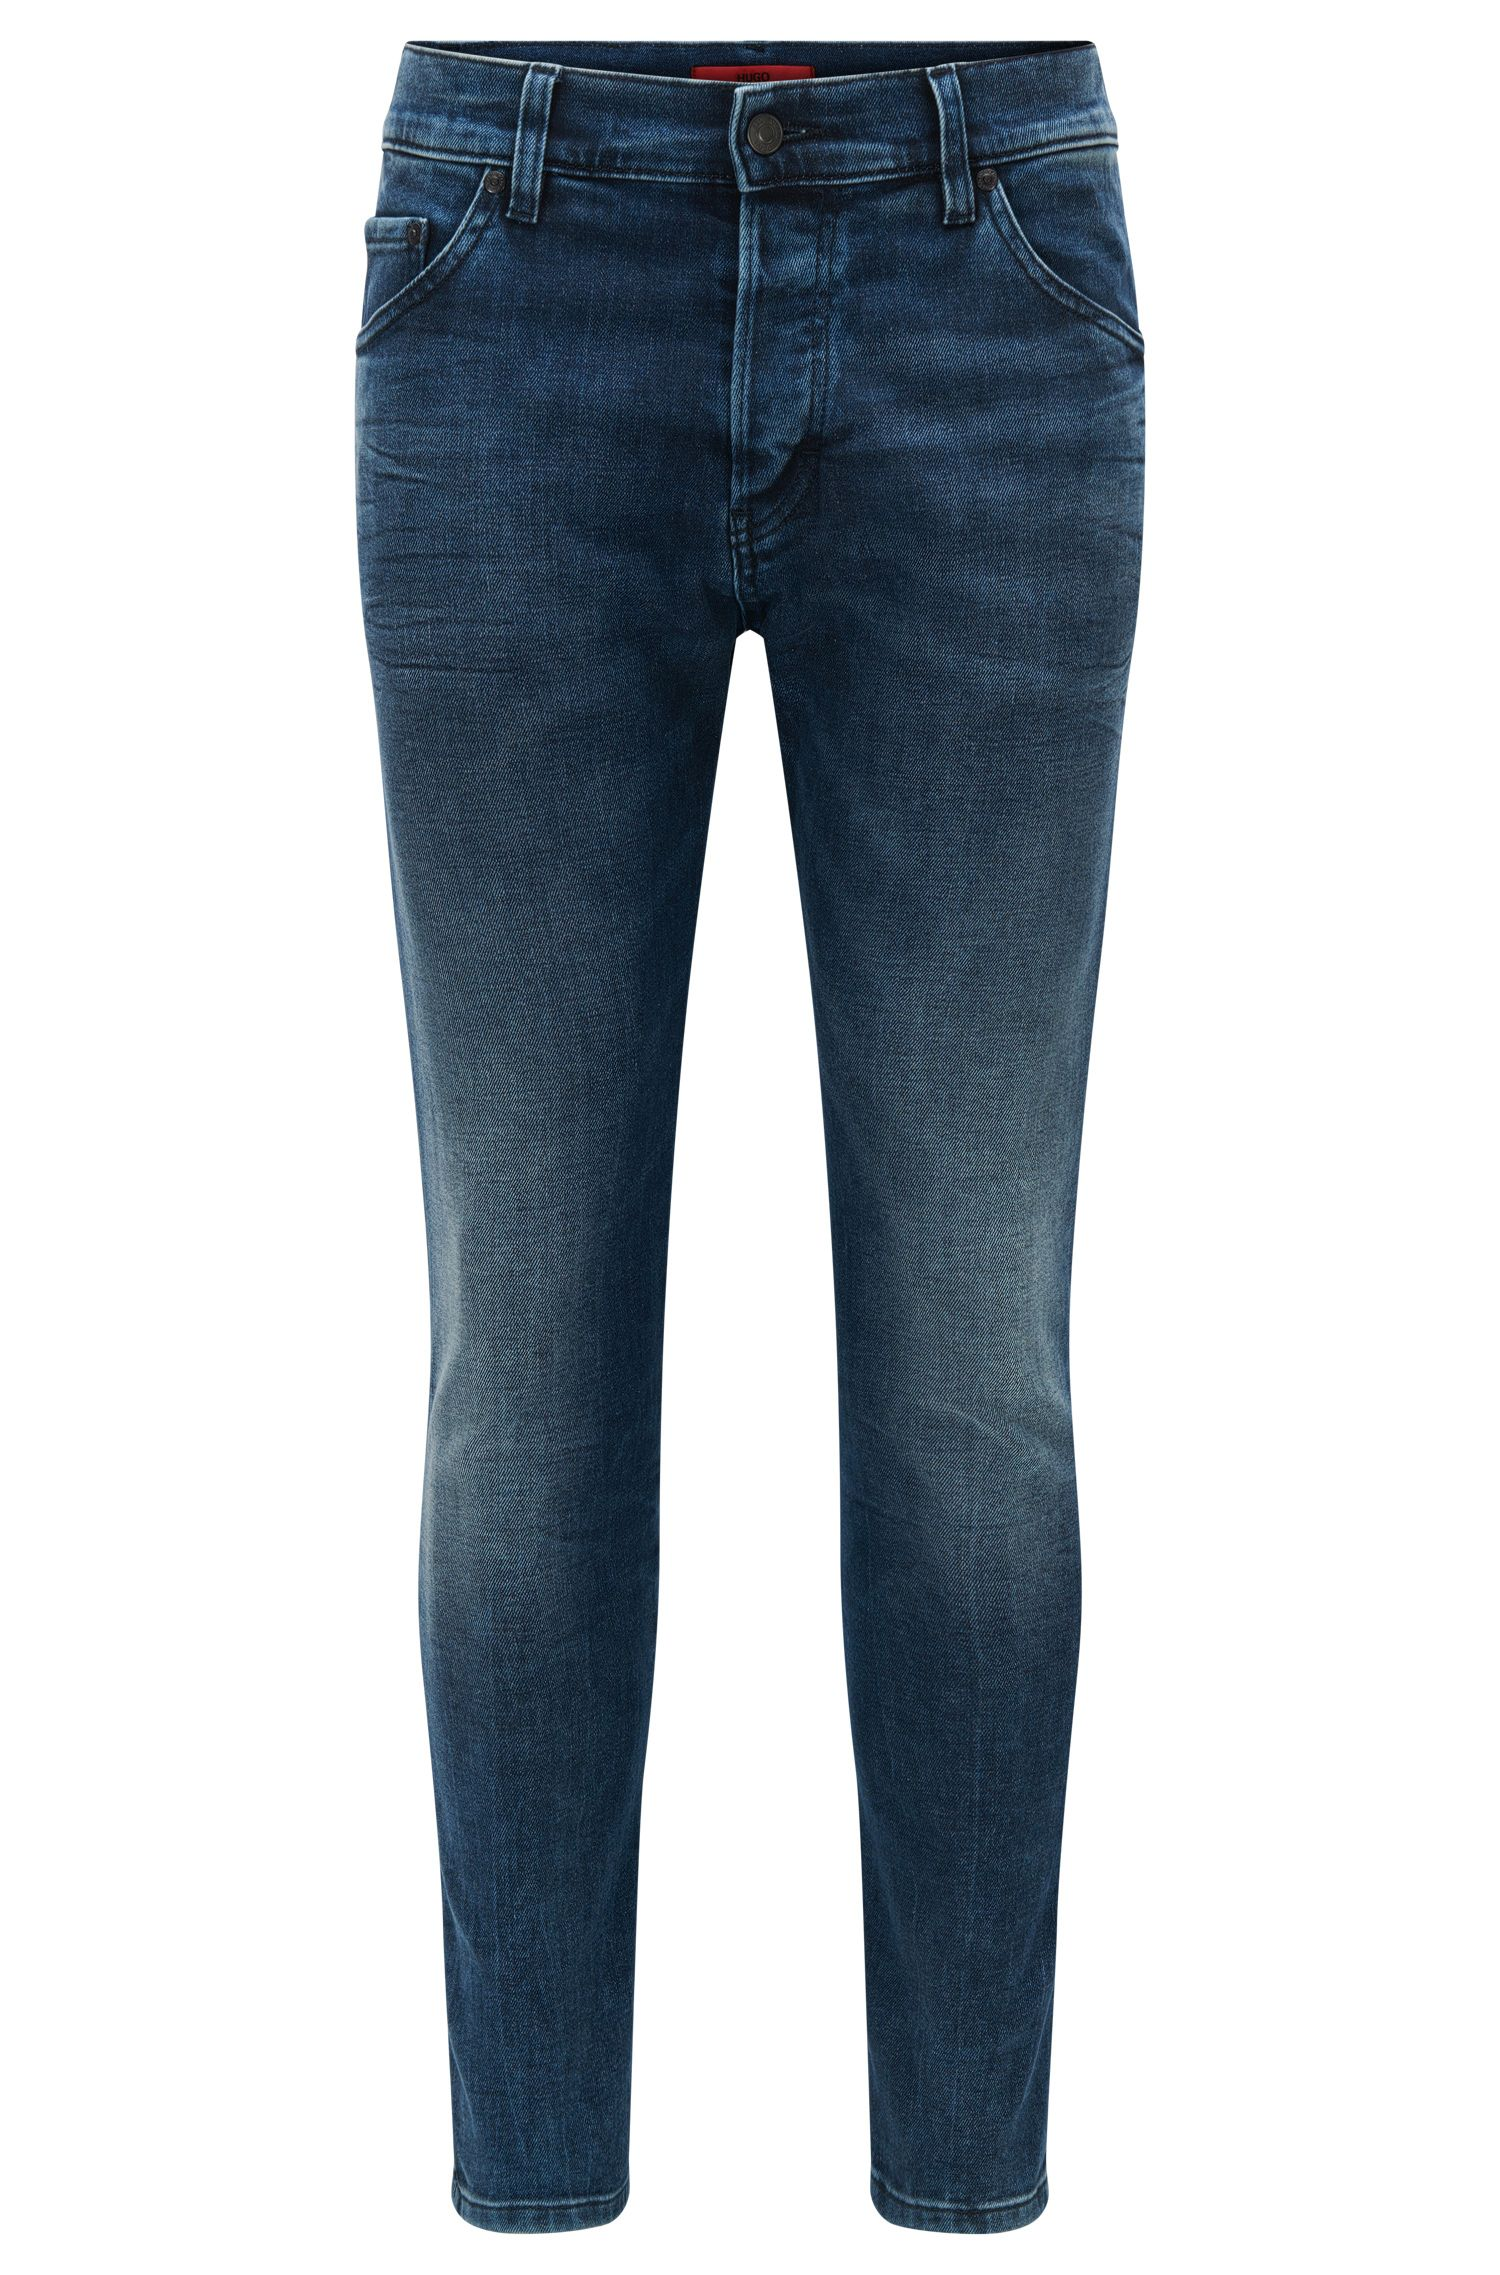 Jeans Tapered Fit en denim stretch à délavage moyen